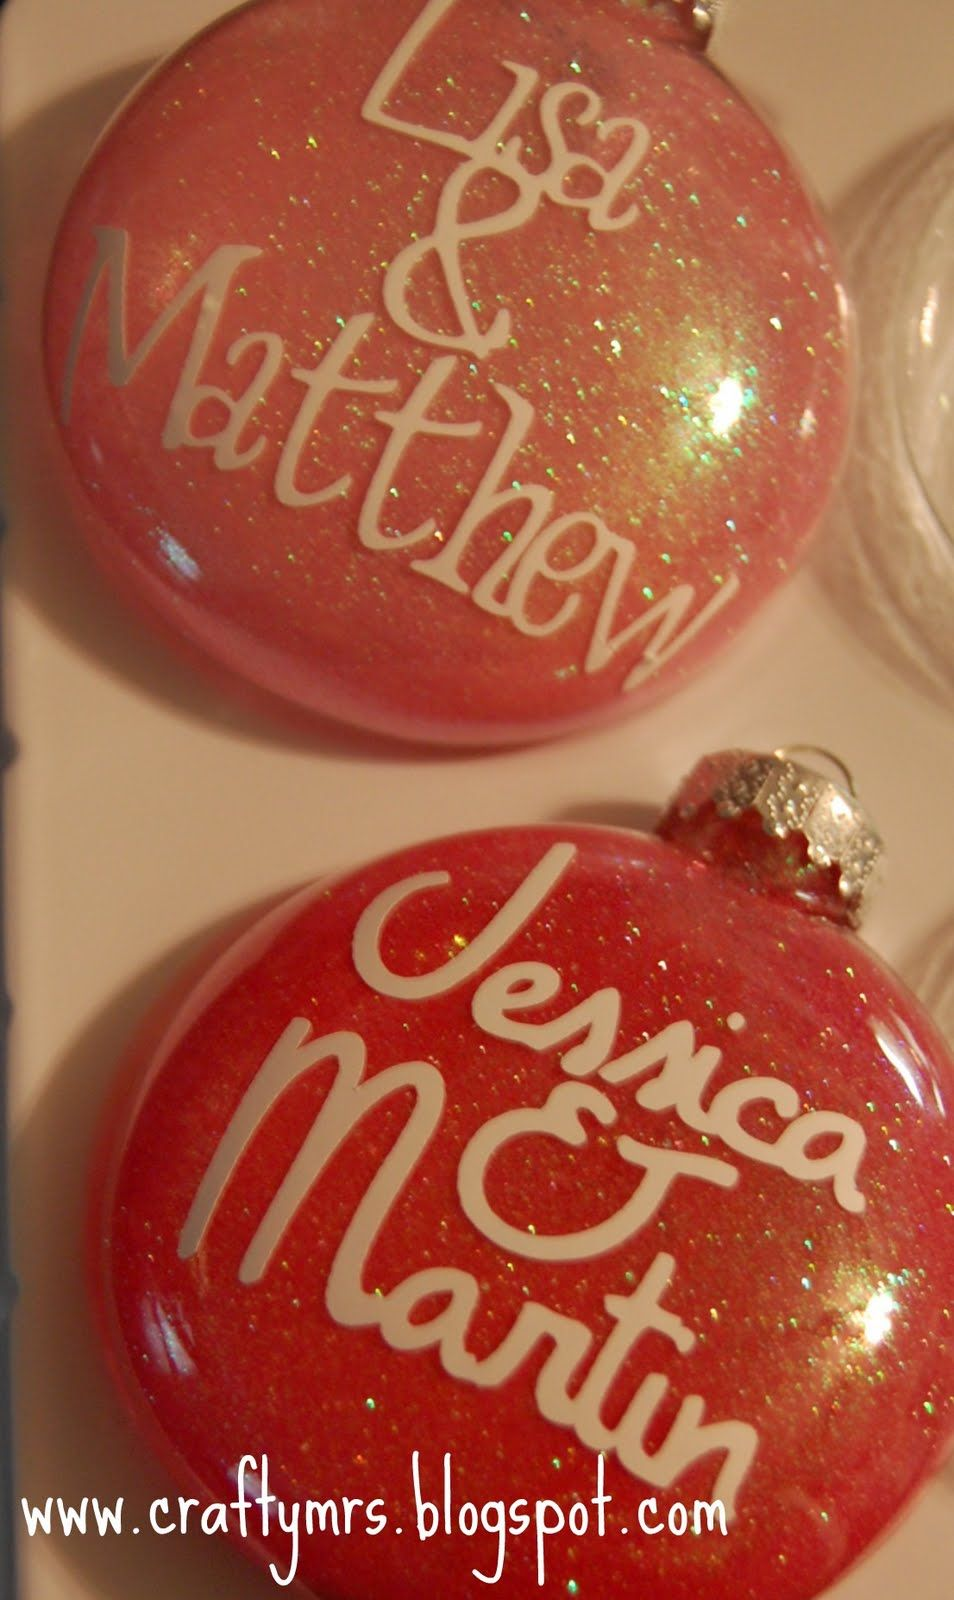 Craftymrs engagement glitter ornaments with vinyl odds and ends